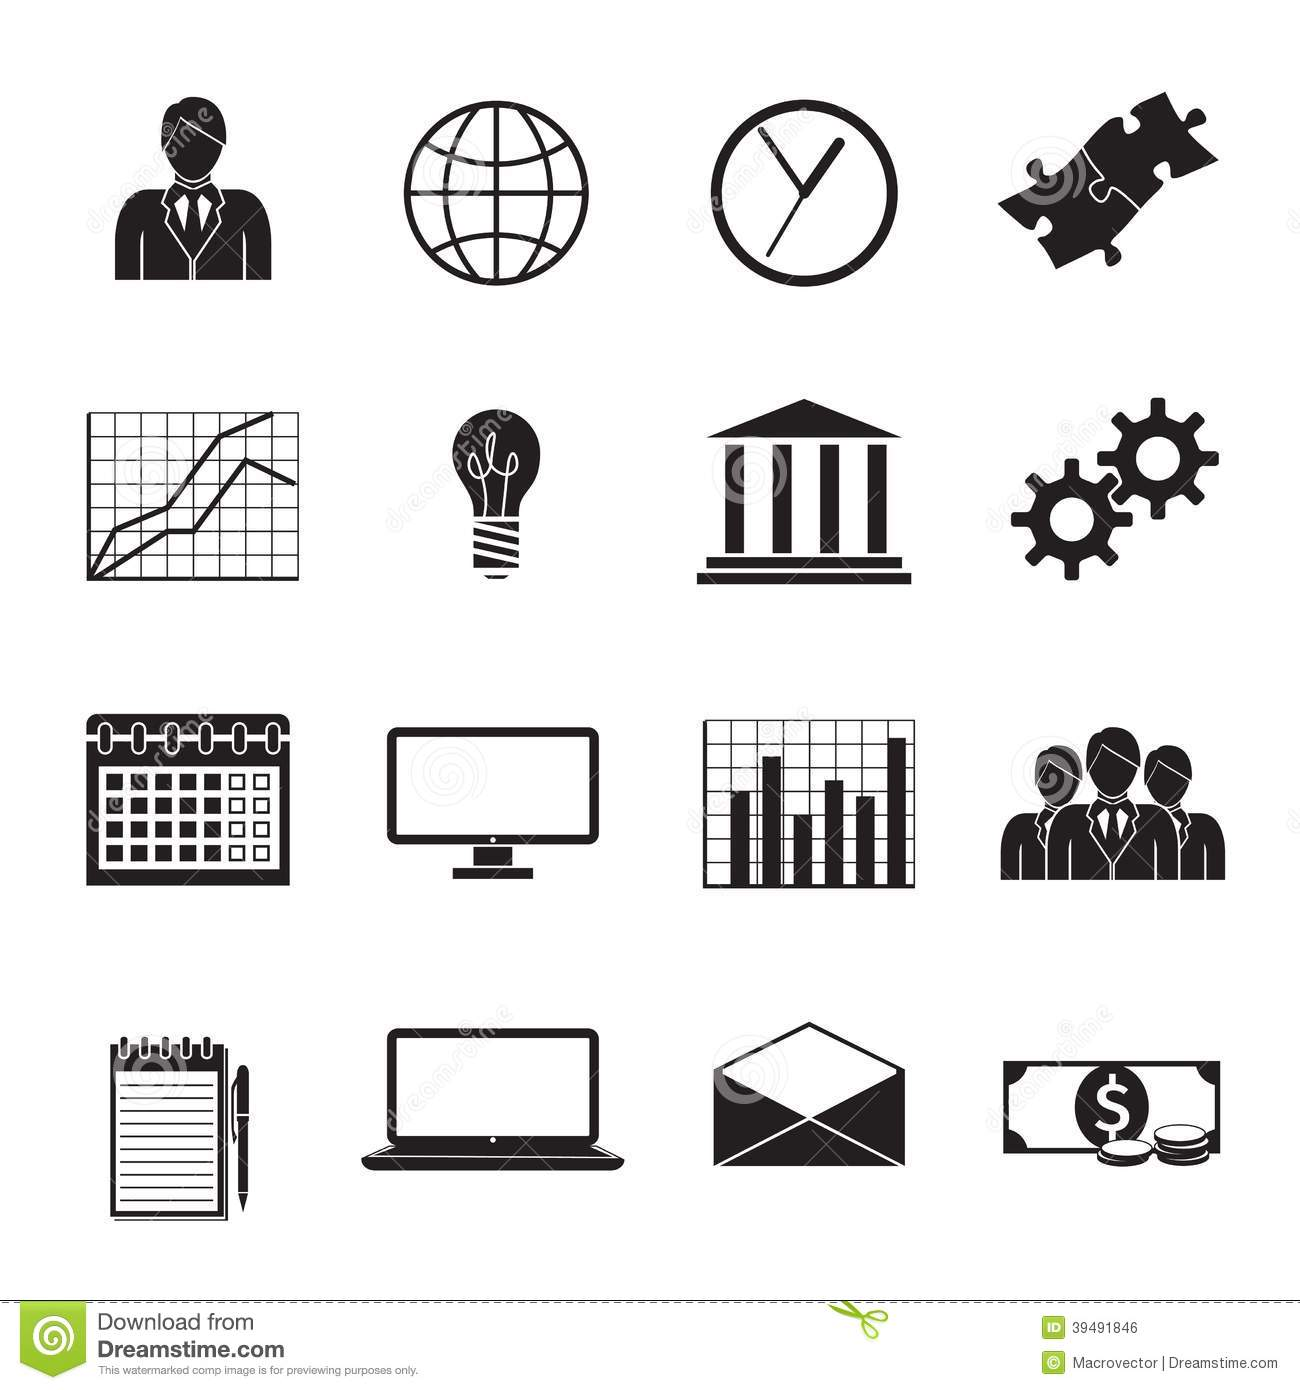 Generic Business People Icons